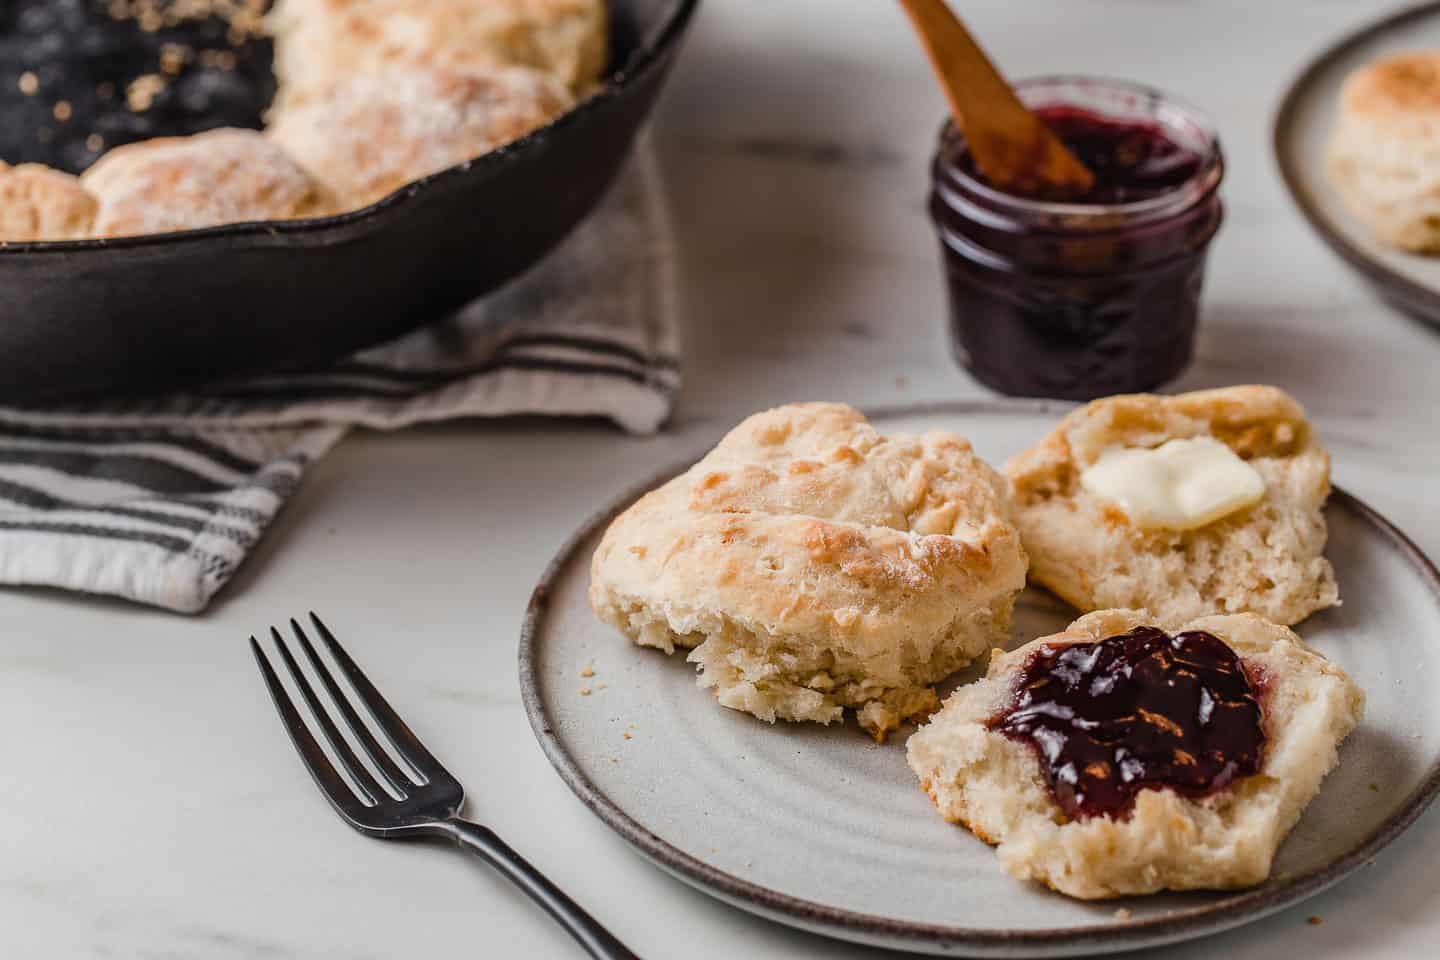 A plate of sourdough biscuits with preserves and butter.